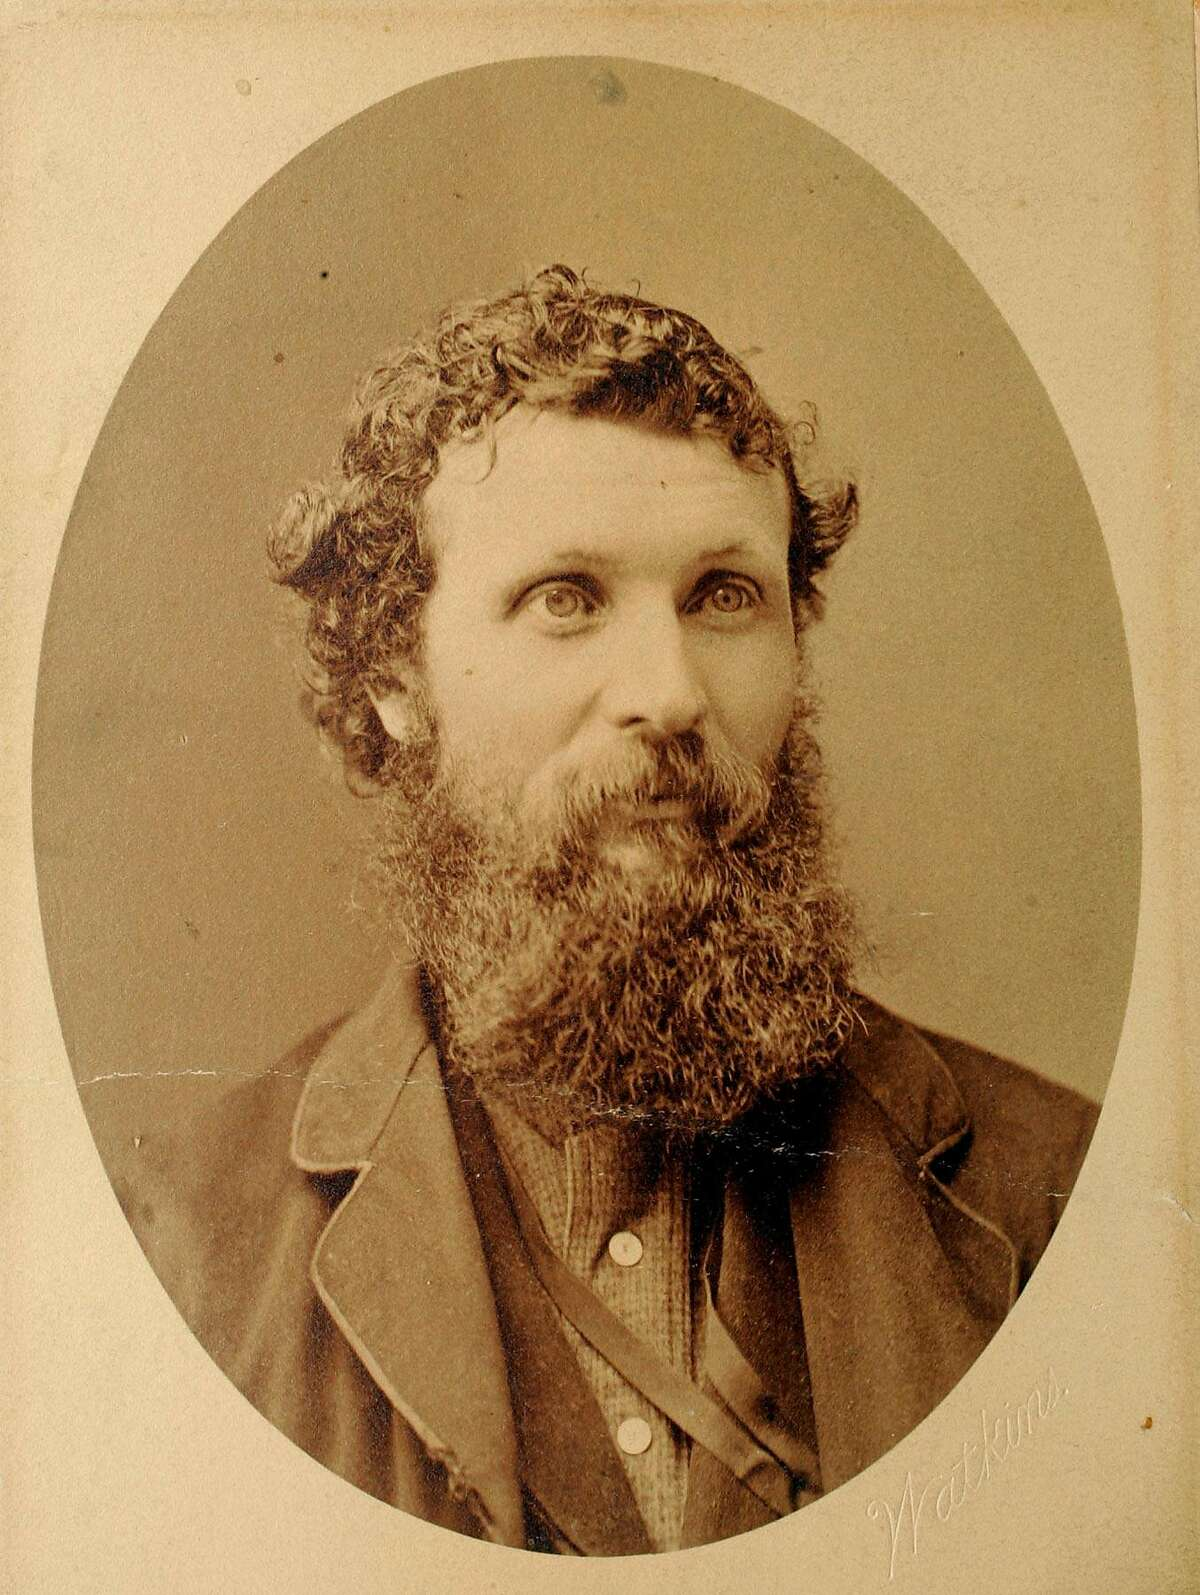 John Muir is shown in this circa 1860s image issued by the Wisconsin Historical Society. The society is publishing a rare collection of letters written by Muir on the society's Web site. The letters span more than 50 years of Muir's life, documenting in his own words how he evolved from a strict Calvinist at the University of Wisconsin-Madison to a mountain-climbing, tree-hugging advocate for all things nature. (AP Photo/Wisconsin Historical Society) Greatest Californian: John Muir, shown in a circa 1860s image from the Wisconsin Historical Society, made saving the Sierra Nevada the focus of his conservation efforts.